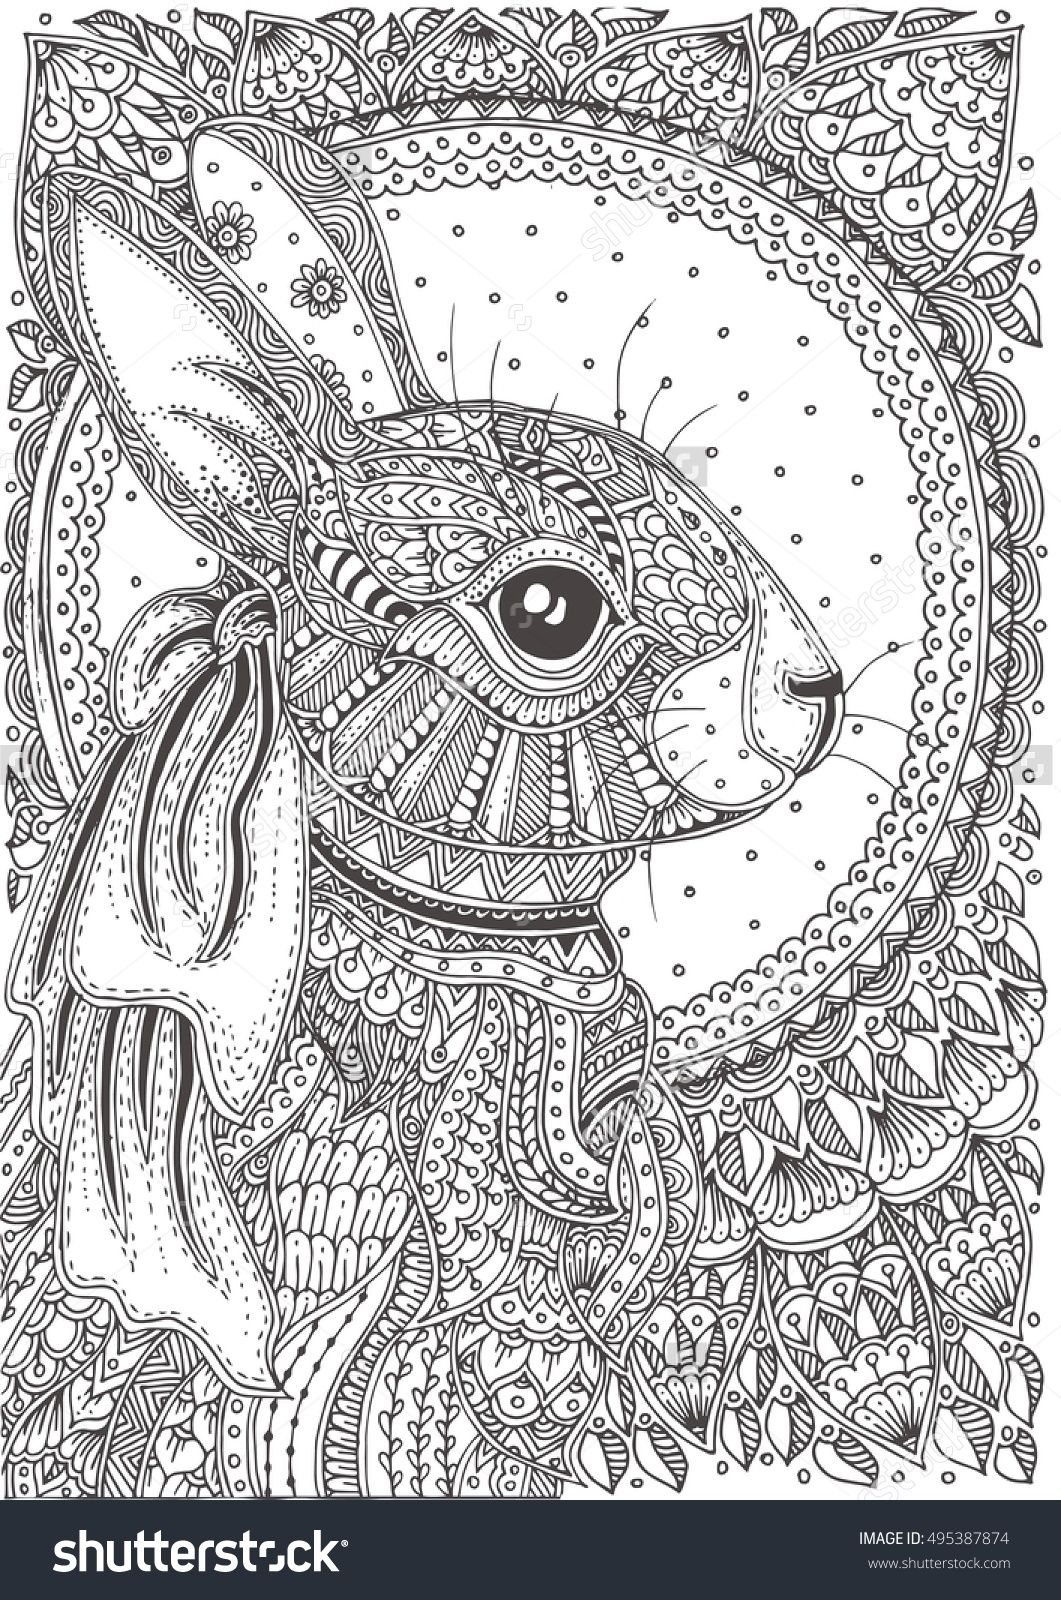 Rabbit hand-drawn with ethnic floral doodle pattern. Coloring page ...